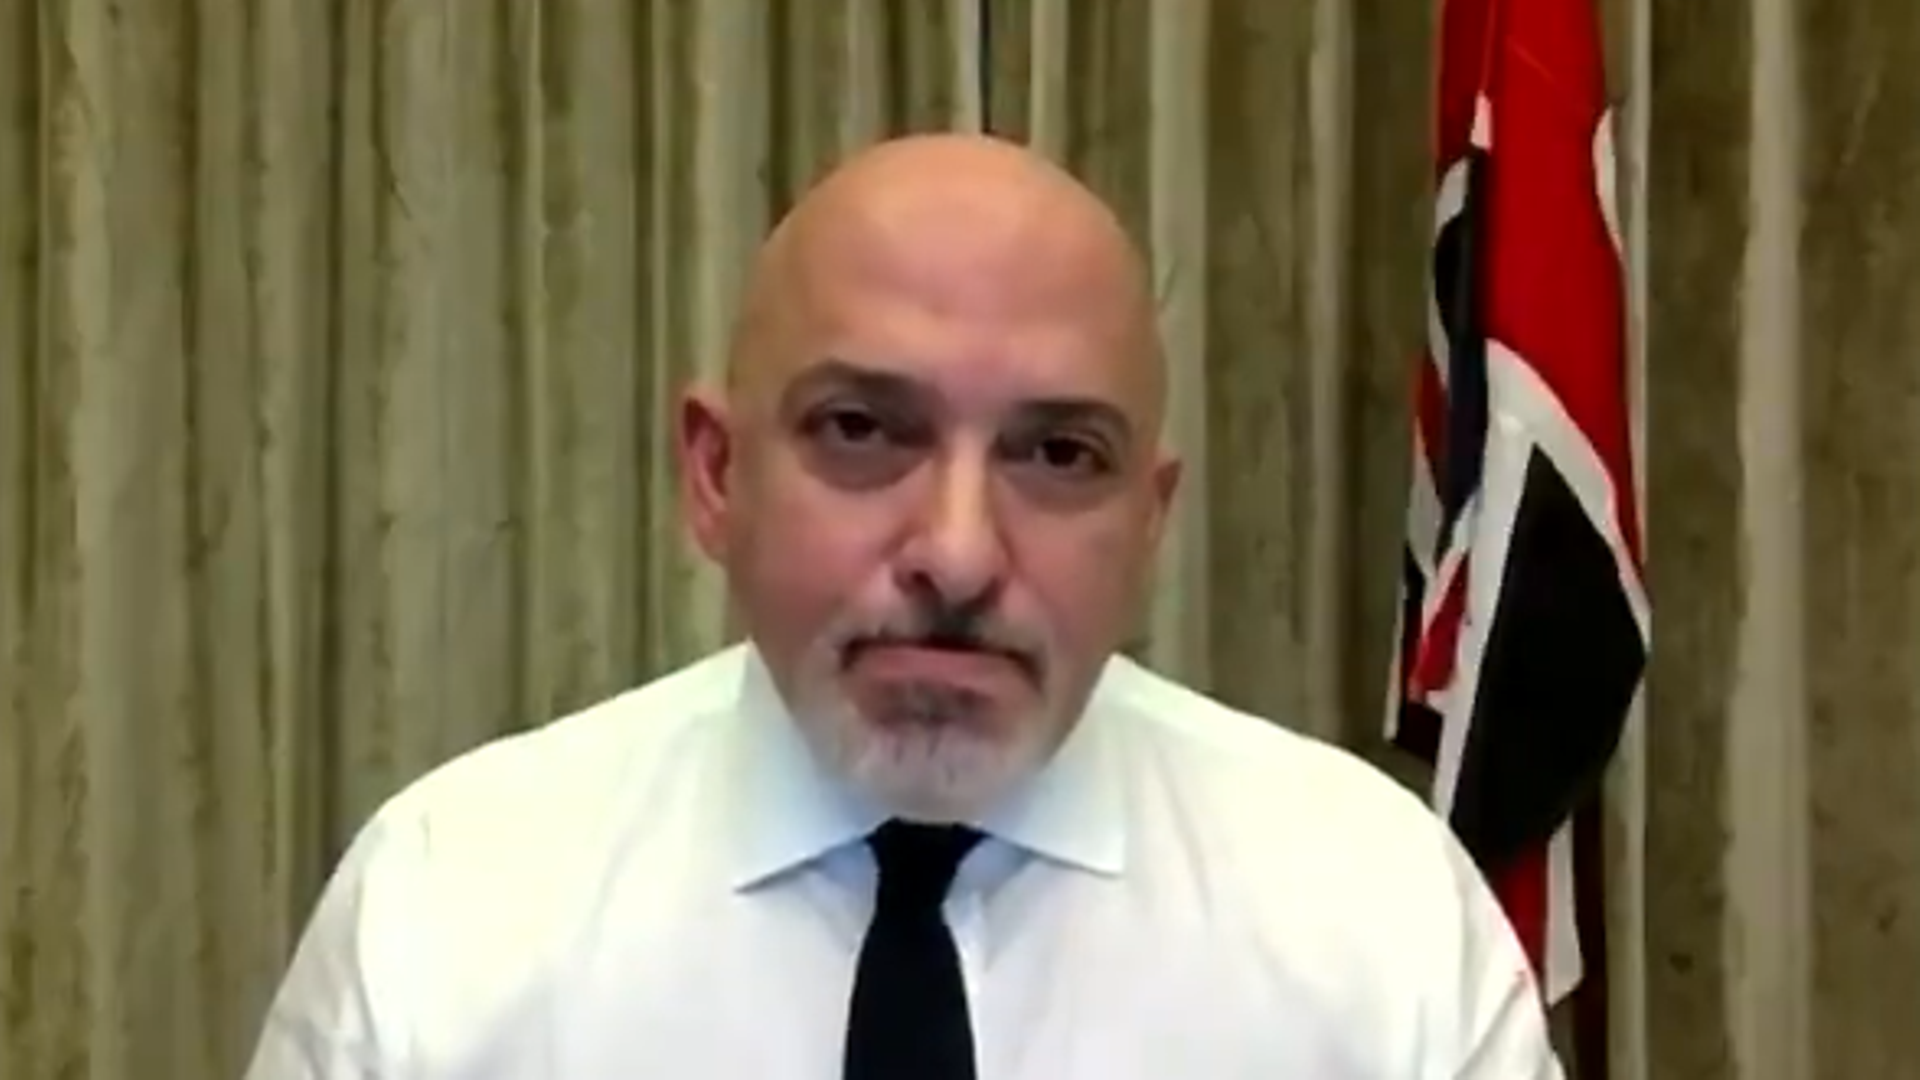 Vaccines minister Nadhim Zahawi has revealed he has an uncle to Covid-19 in the last week. - Credit: ITV